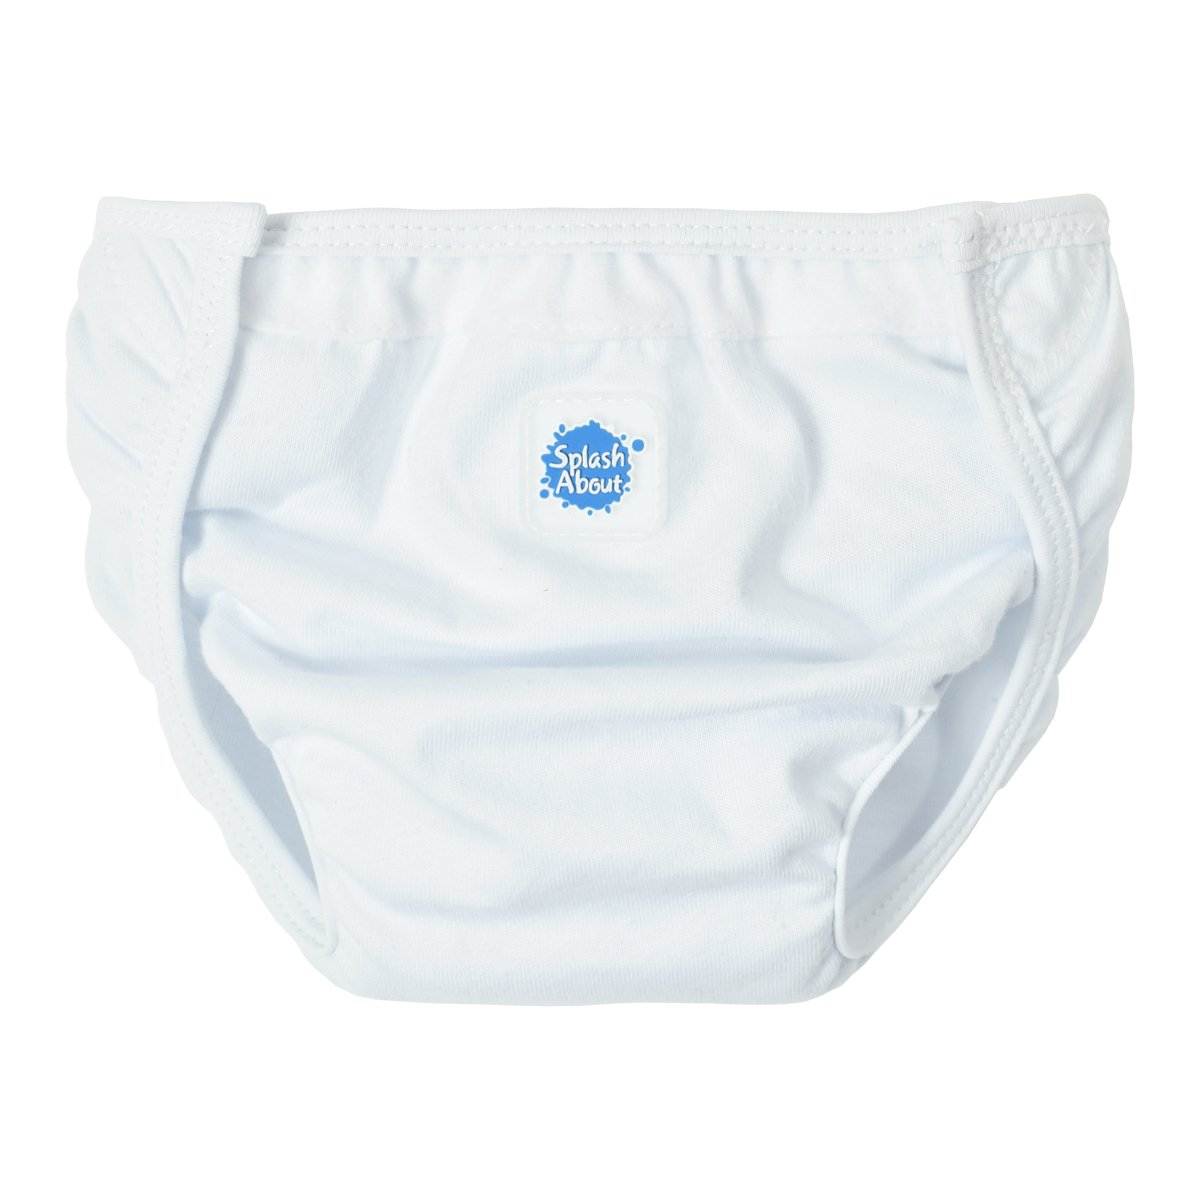 Splash About Kids Single Nappy Wrap - White